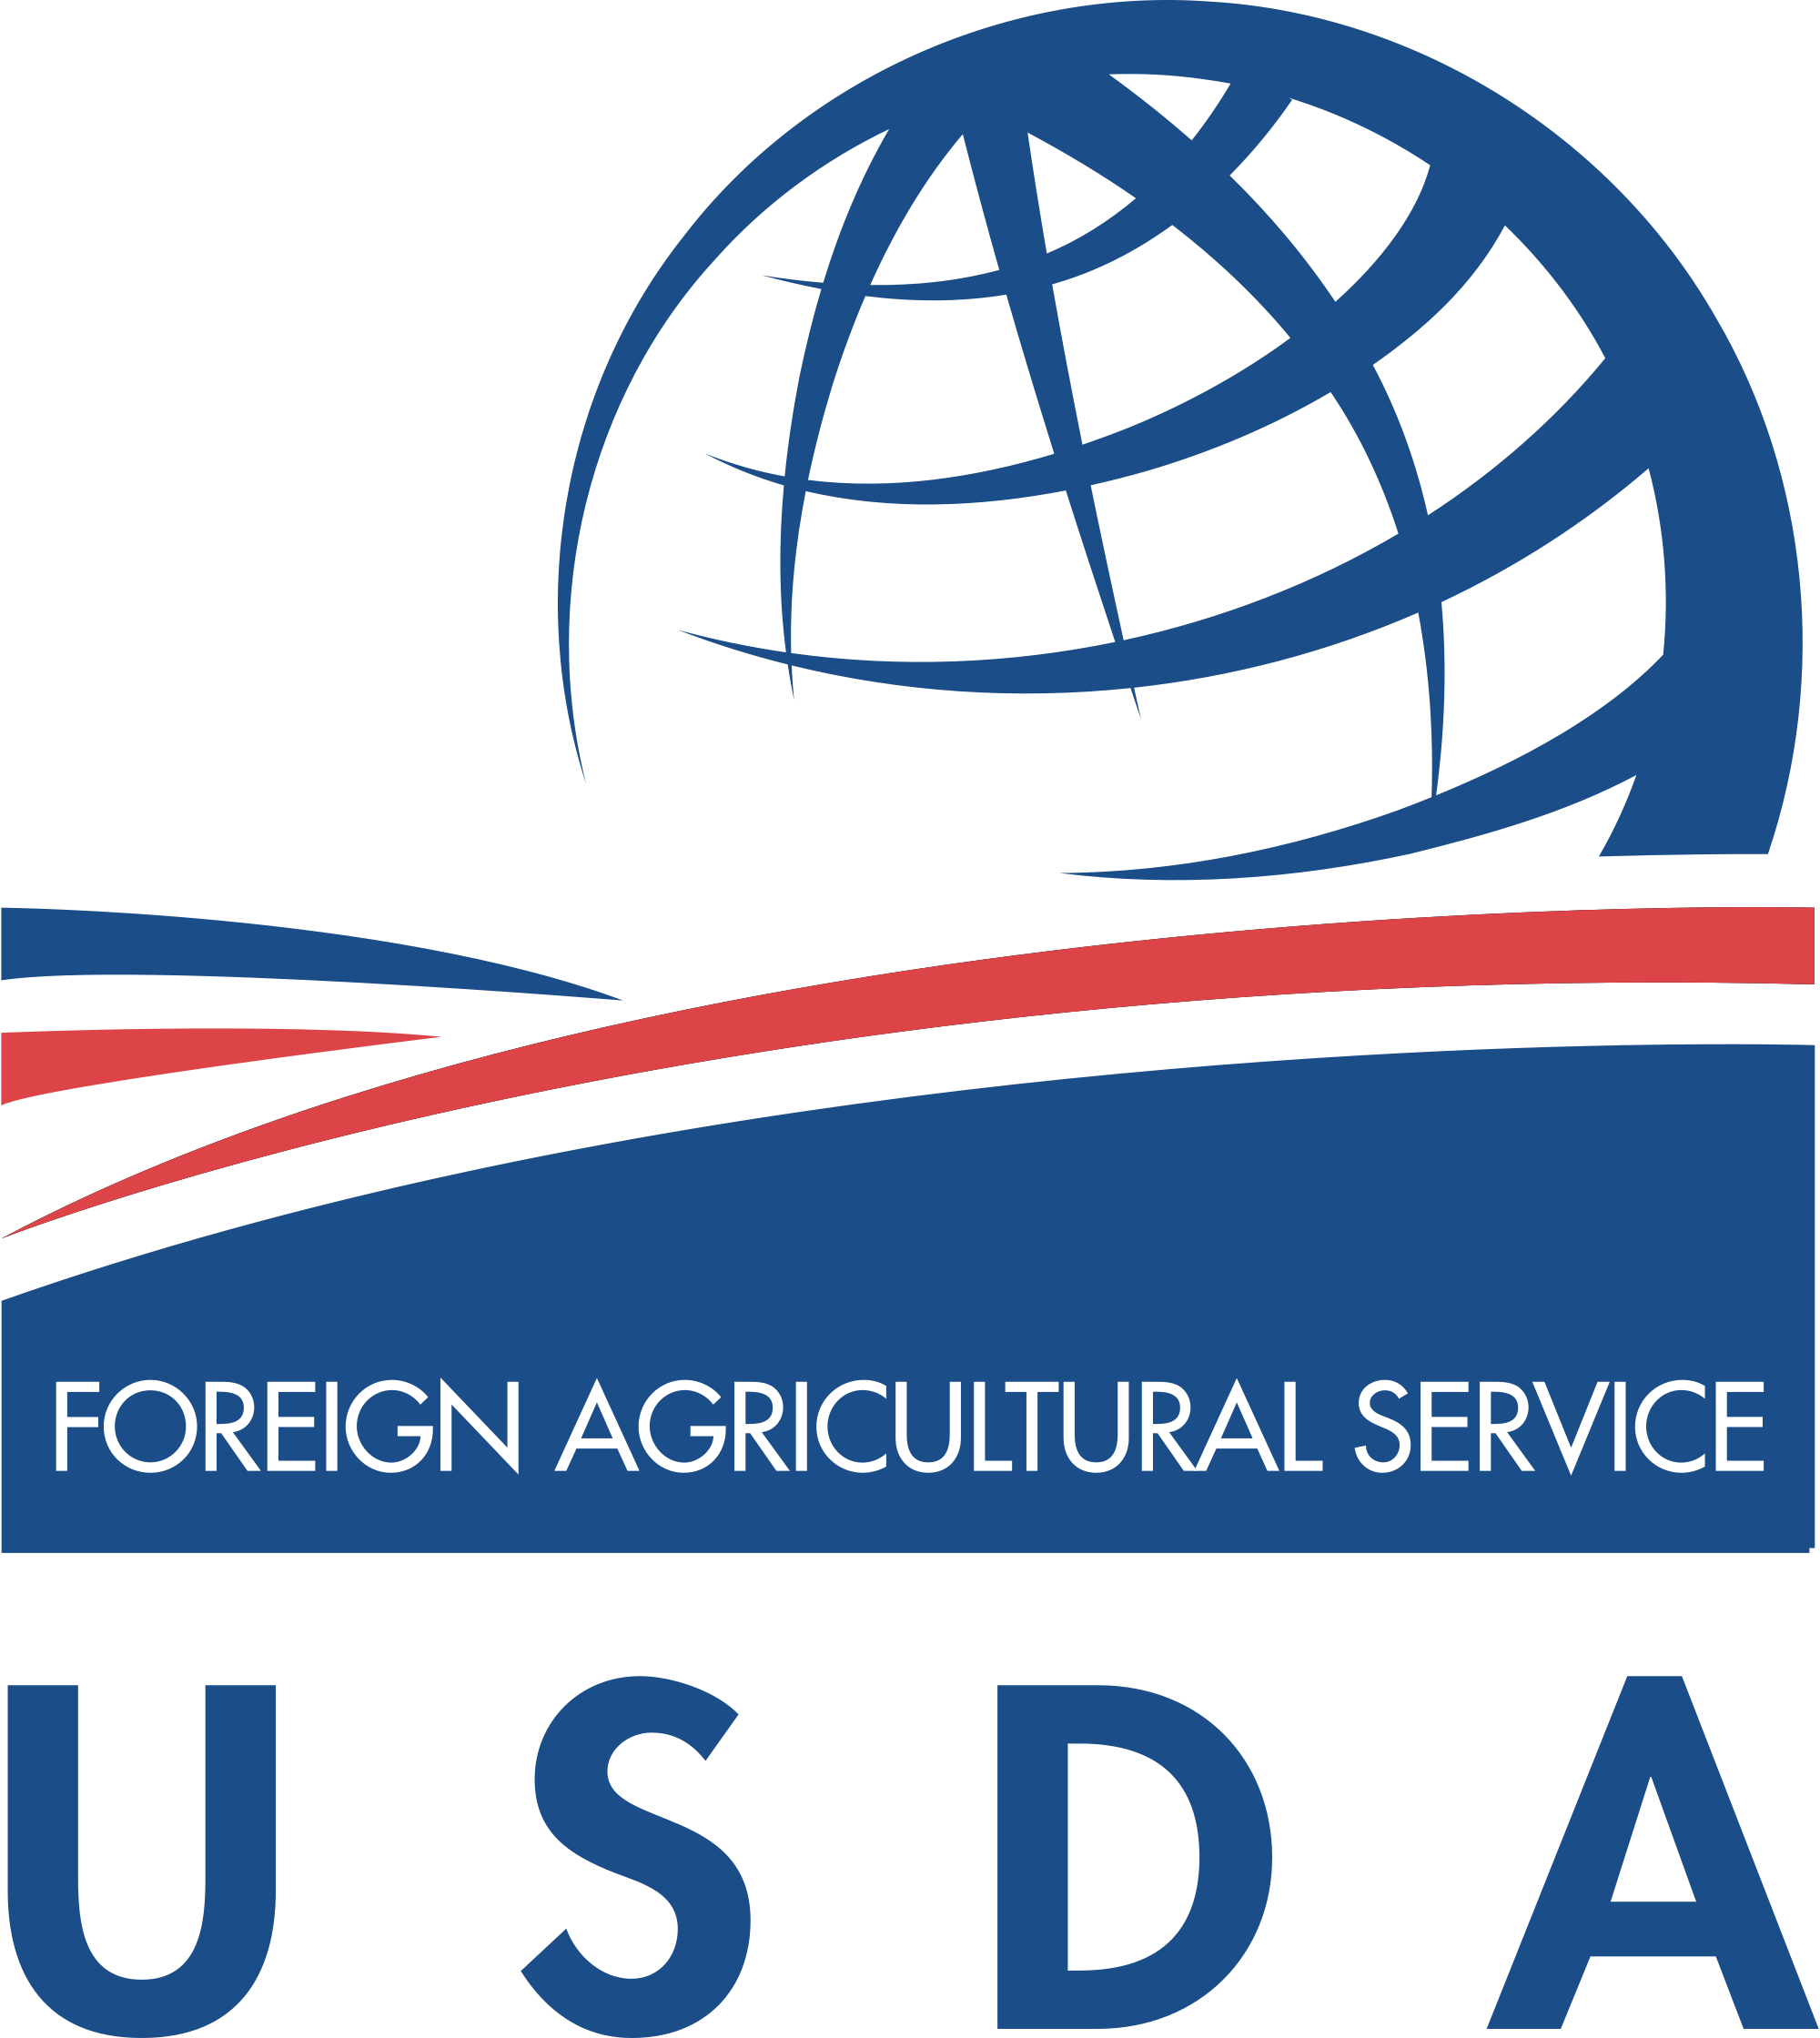 Foreign Agricultural Service Logo